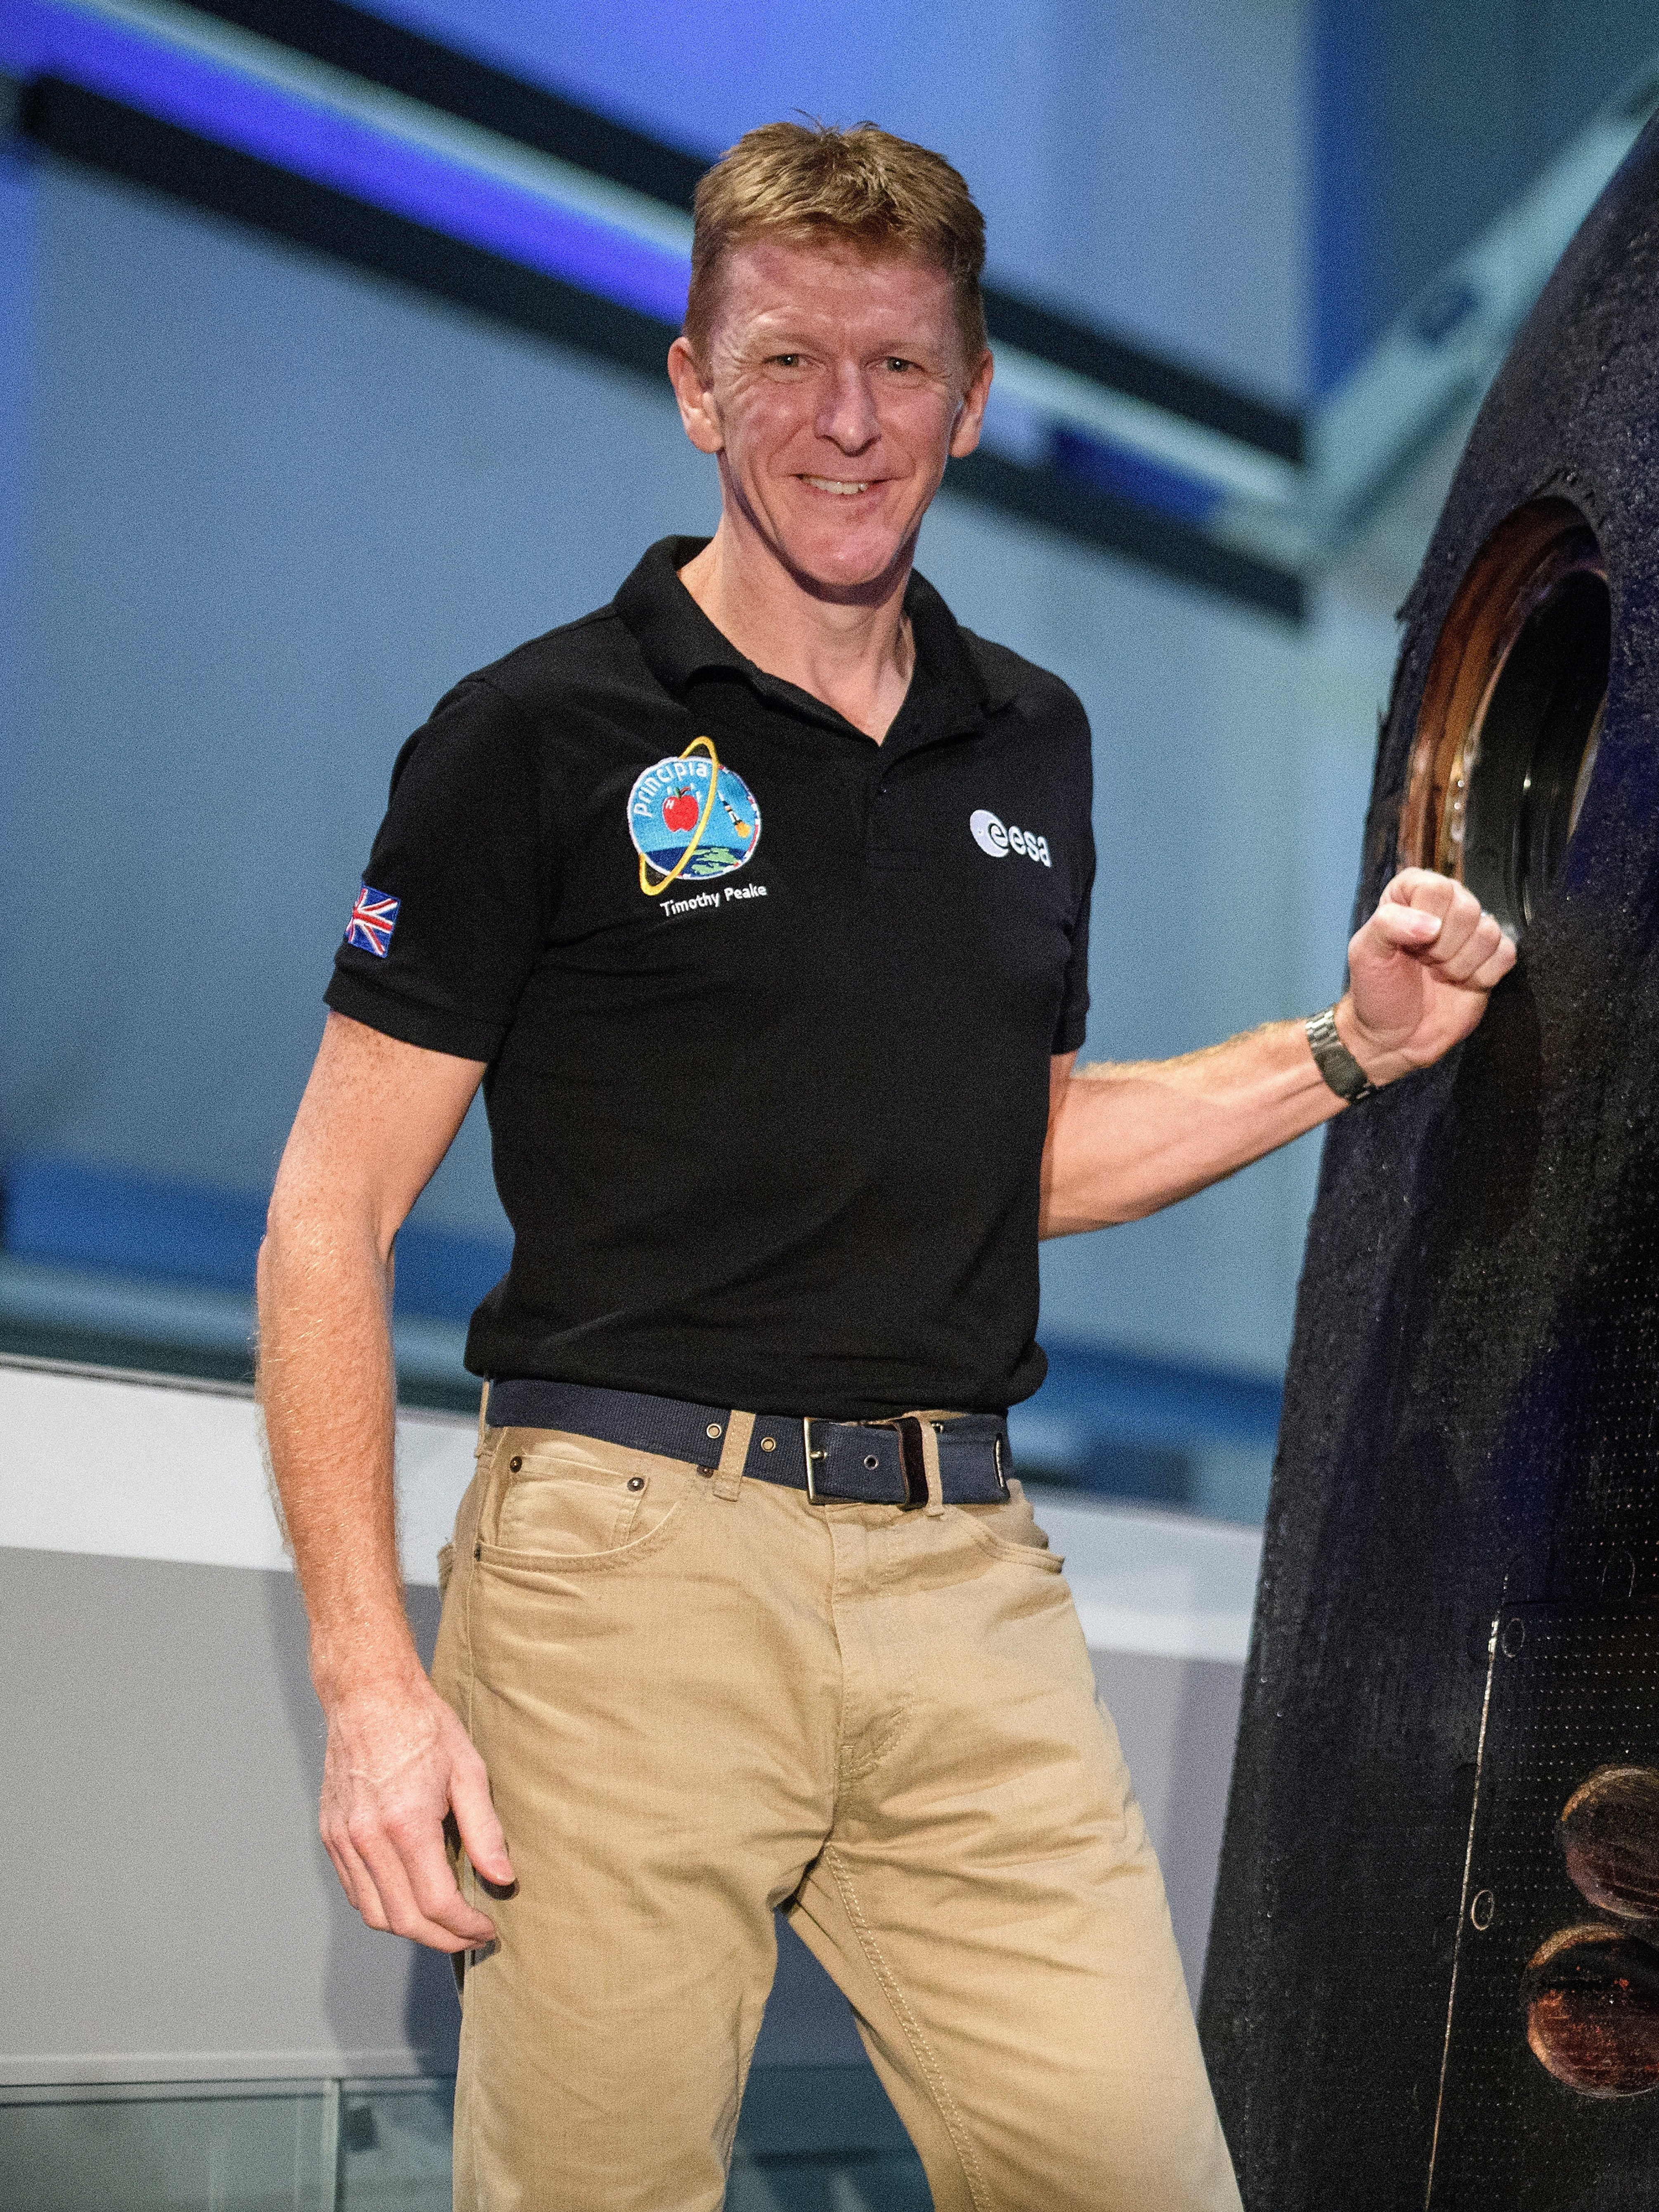 LONDON, ENGLAND - JANUARY 26:  British astronaut Tim Peake poses with the Soyuz TMA-19M descent module which he used to return from the International Space Station, as it is unveiled at the Science Museum on January 26, 2017 in London, England. The Soyuz TMA-19M carried astronauts Yuri Malenchenko (Commander, Russia), Tim Kopra (Flight Engineer, USA) and Tim Peake (Flight Engineer, UK) to the International Space Station on 15 December 2015 and returned the same crew to Earth on 18 June 2016. Major Peake also announced that he is to return to space on a second mission to the International Space Station. (Photo by Leon Neal/Getty Images)